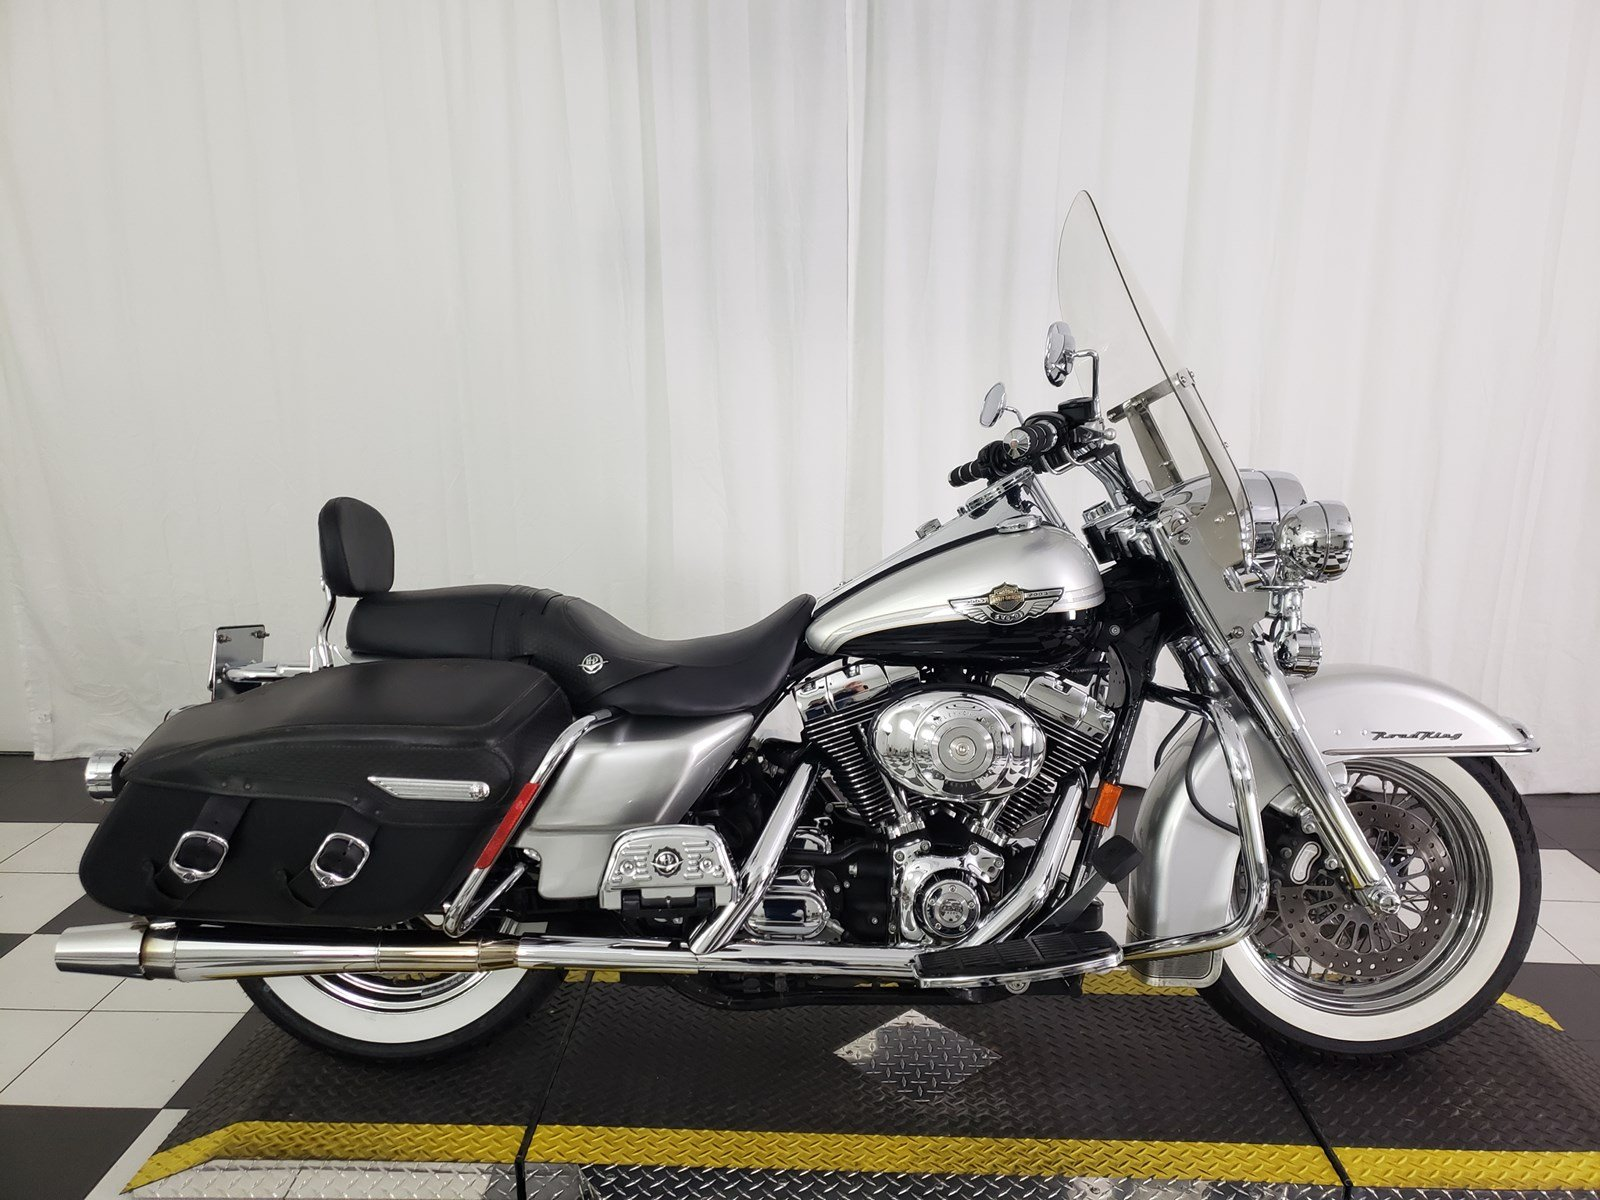 Pre-Owned 2003 Harley-Davidson Road King Classic 100th Anniversary FLHRC